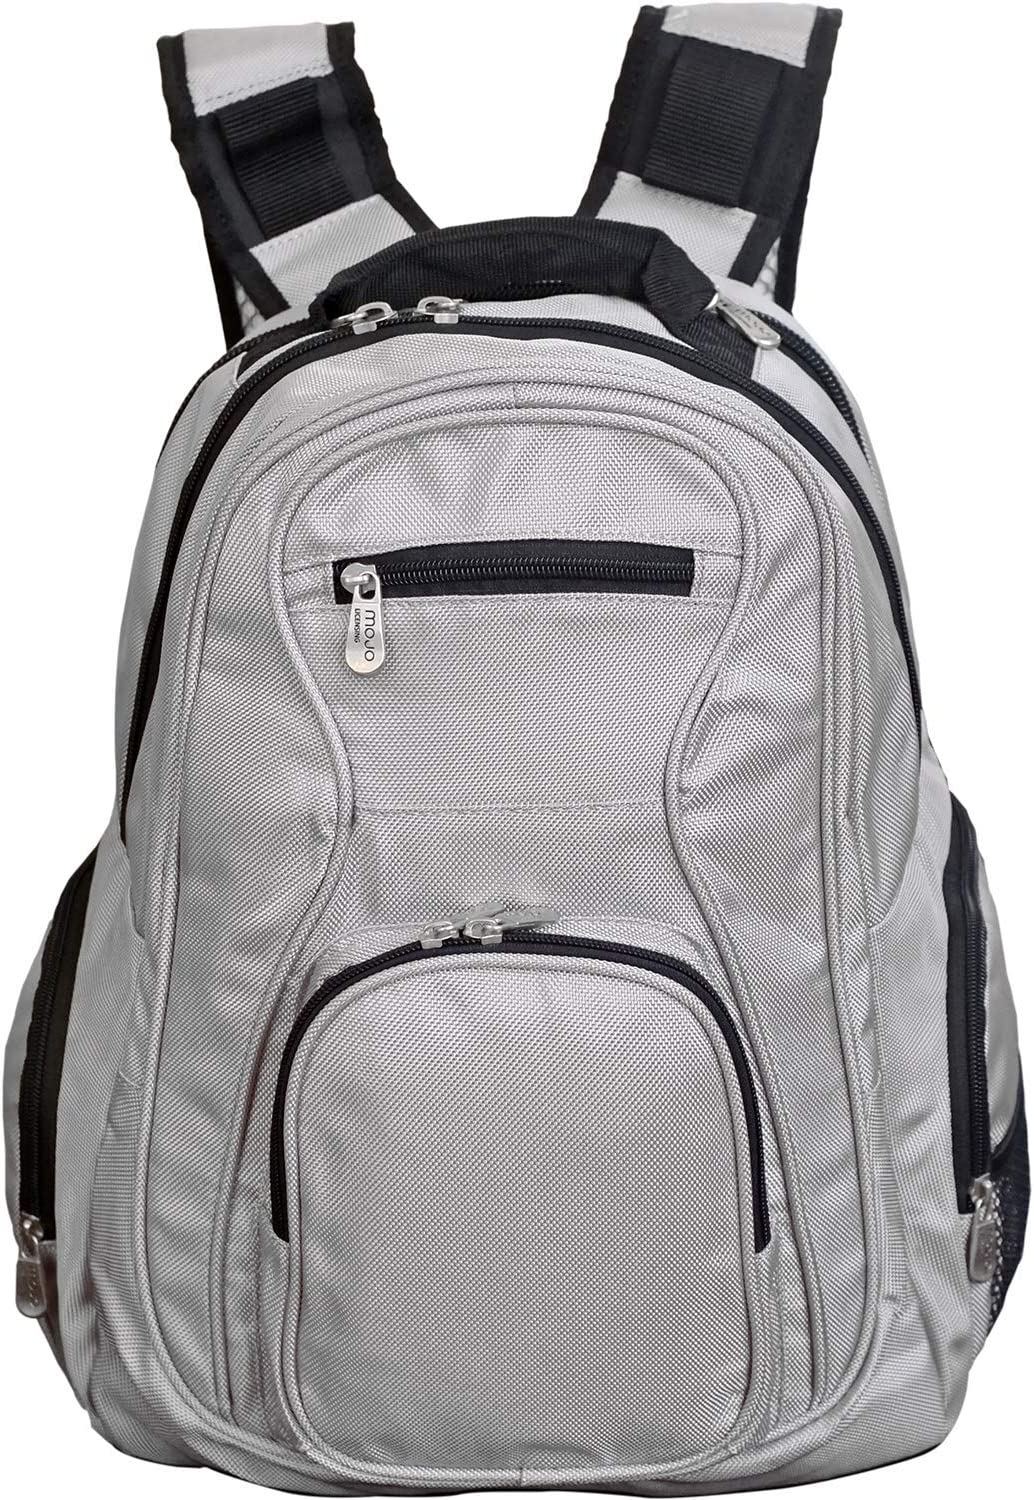 Denco Voyager Laptop Backpack, 19-inches, Grey